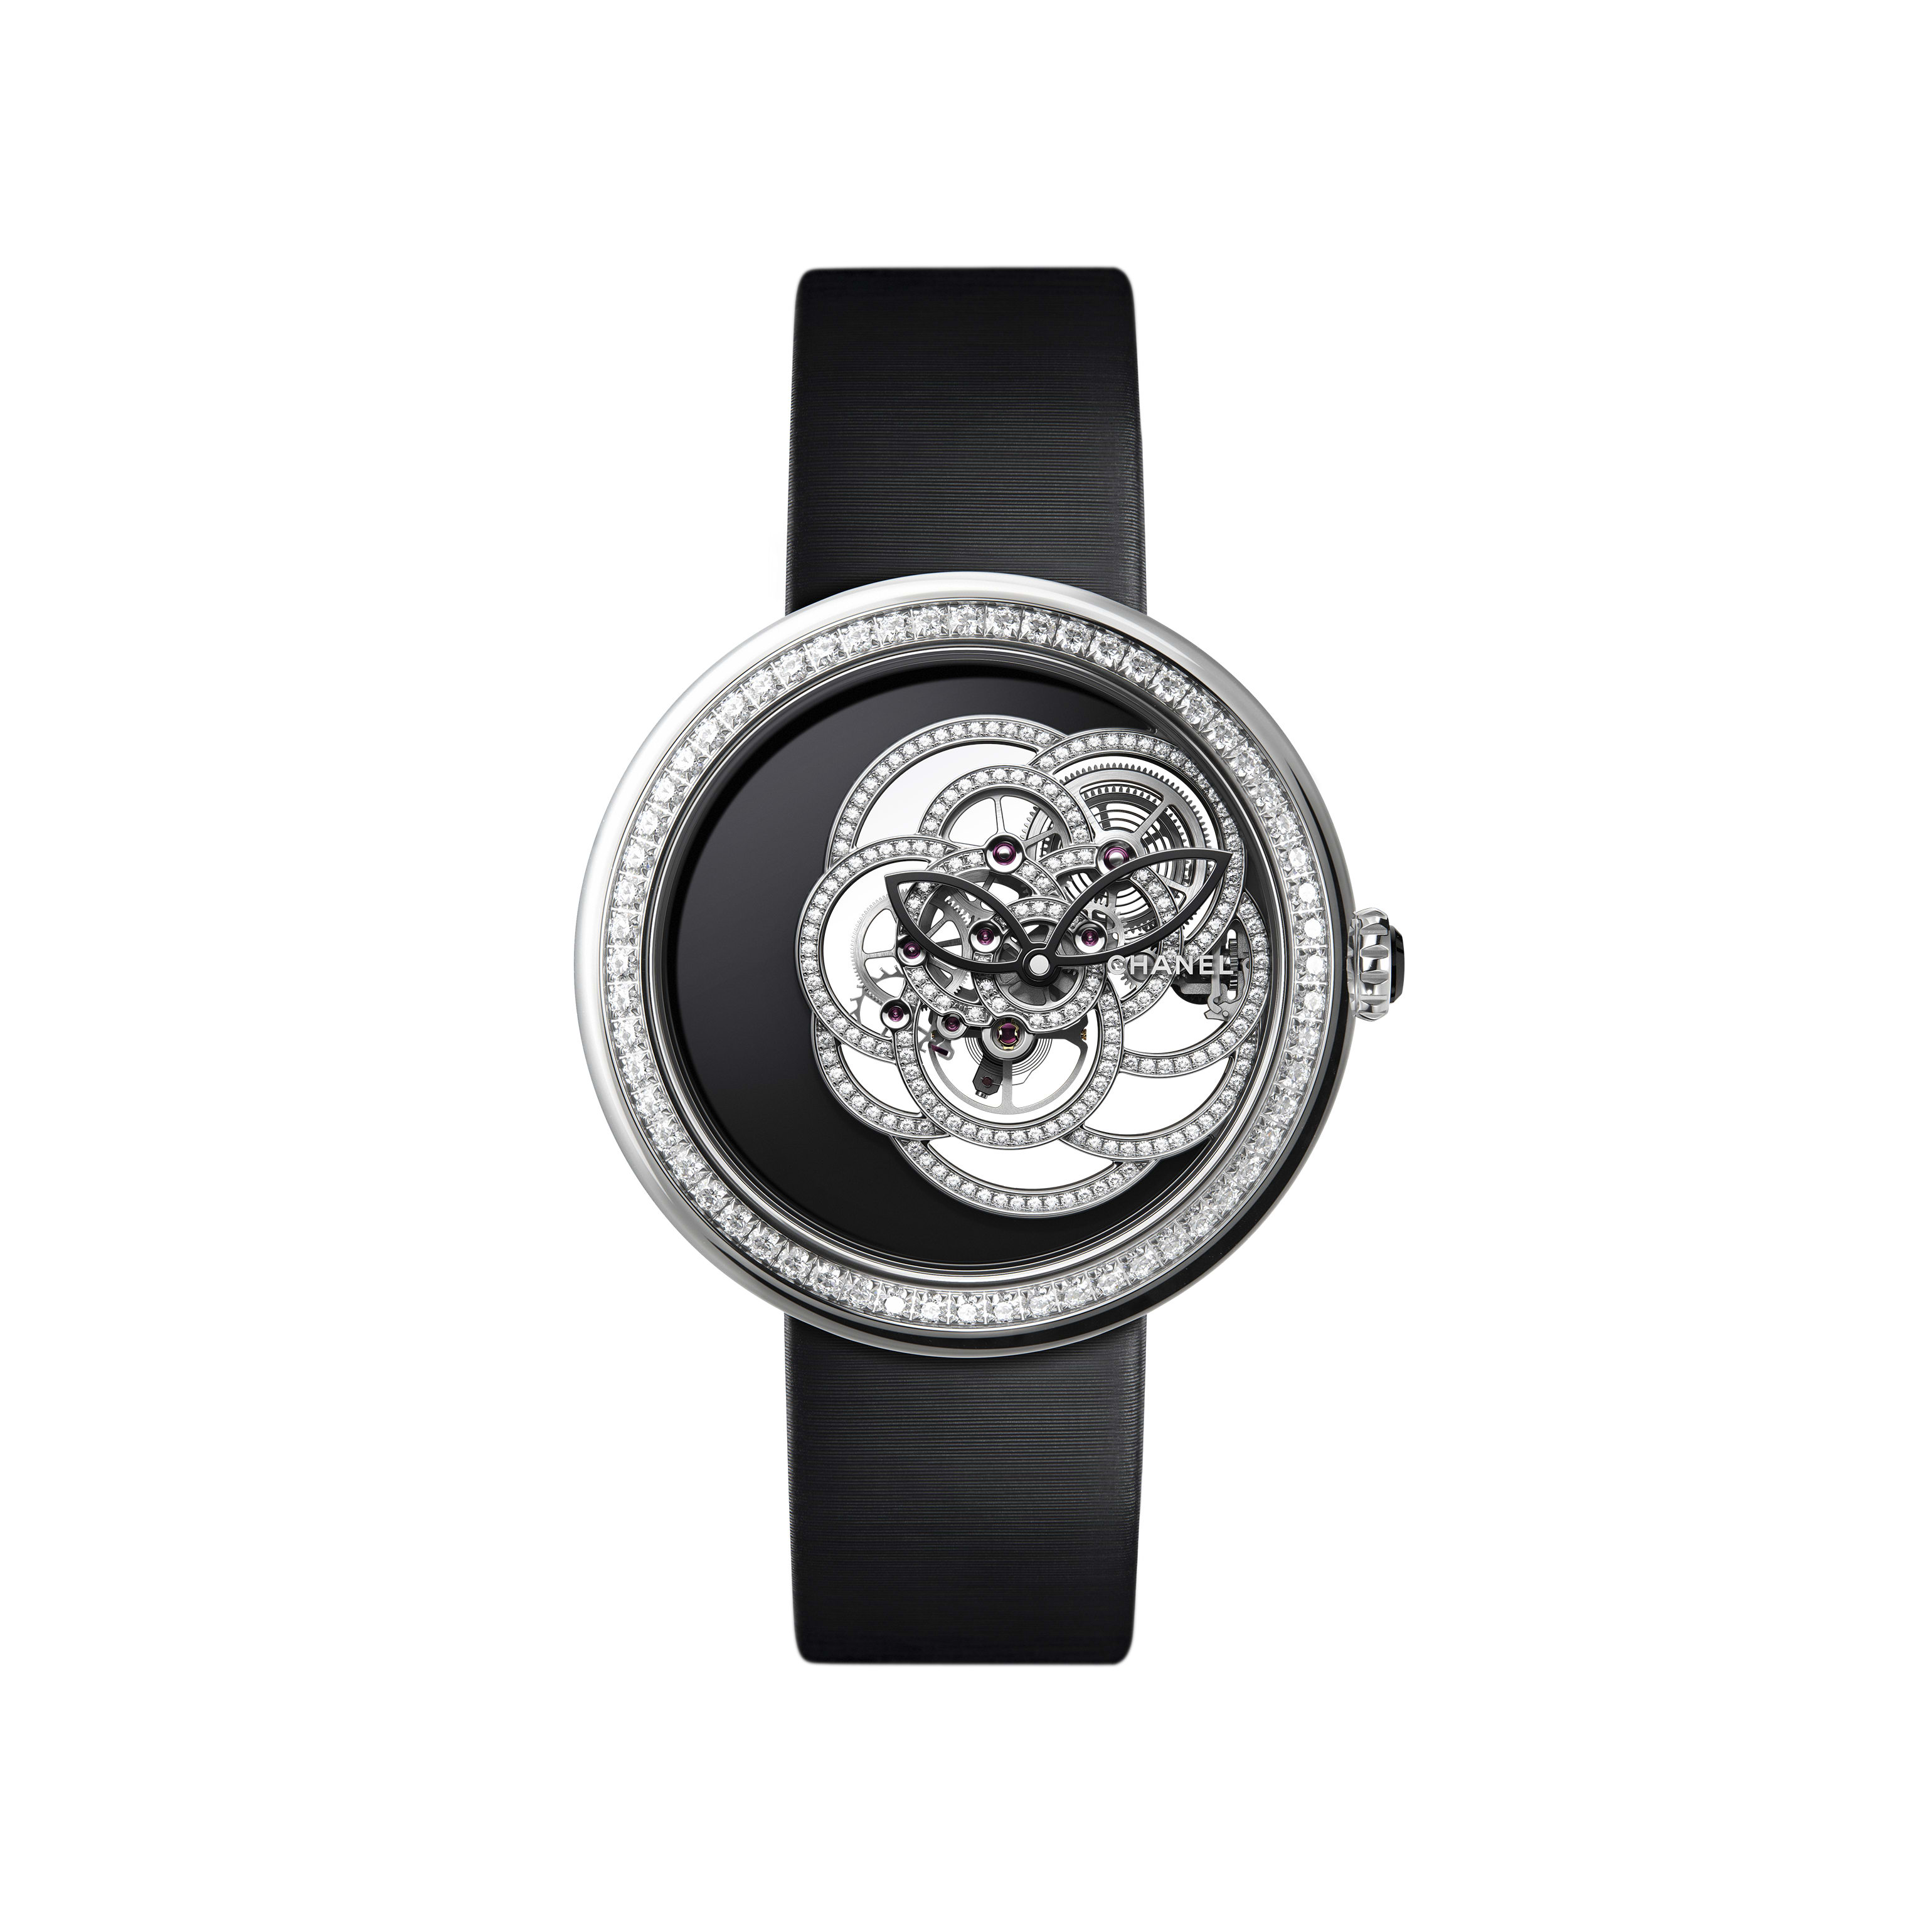 Mademoiselle Privé Camélia Skeleton Watch - White gold case and skeleton set with brilliant cut diamonds - CHANEL - Default view - see standard sized version